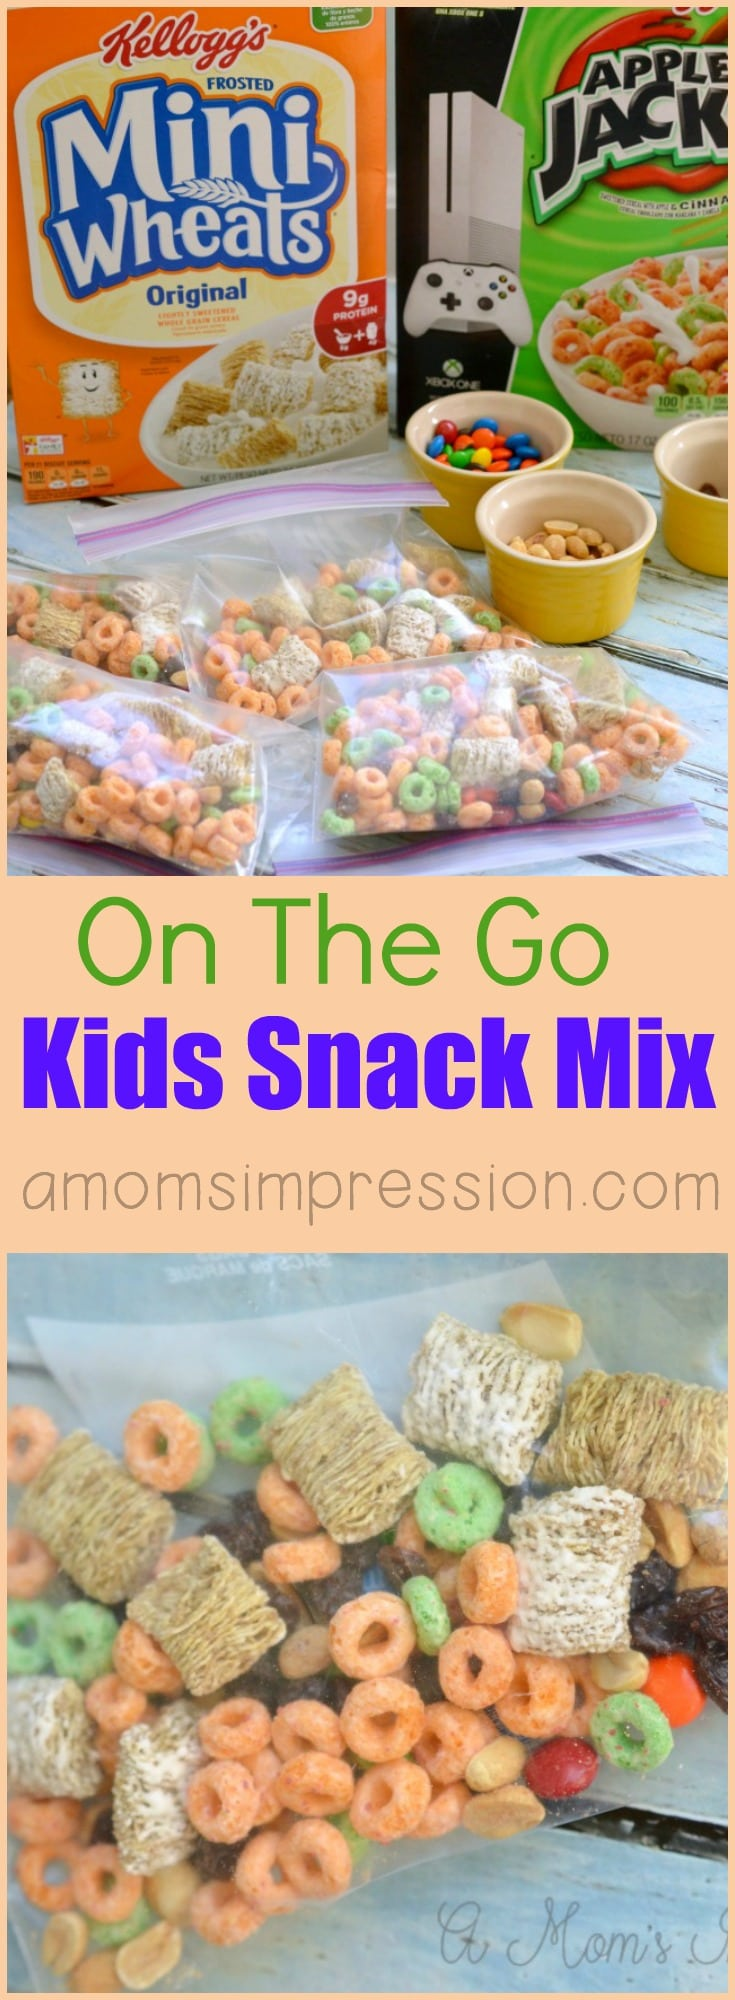 Running out of ideas for snacks for kids? Fast snack recipes are perfect for the on-the-go family and this kids snack mix is divine! #ad